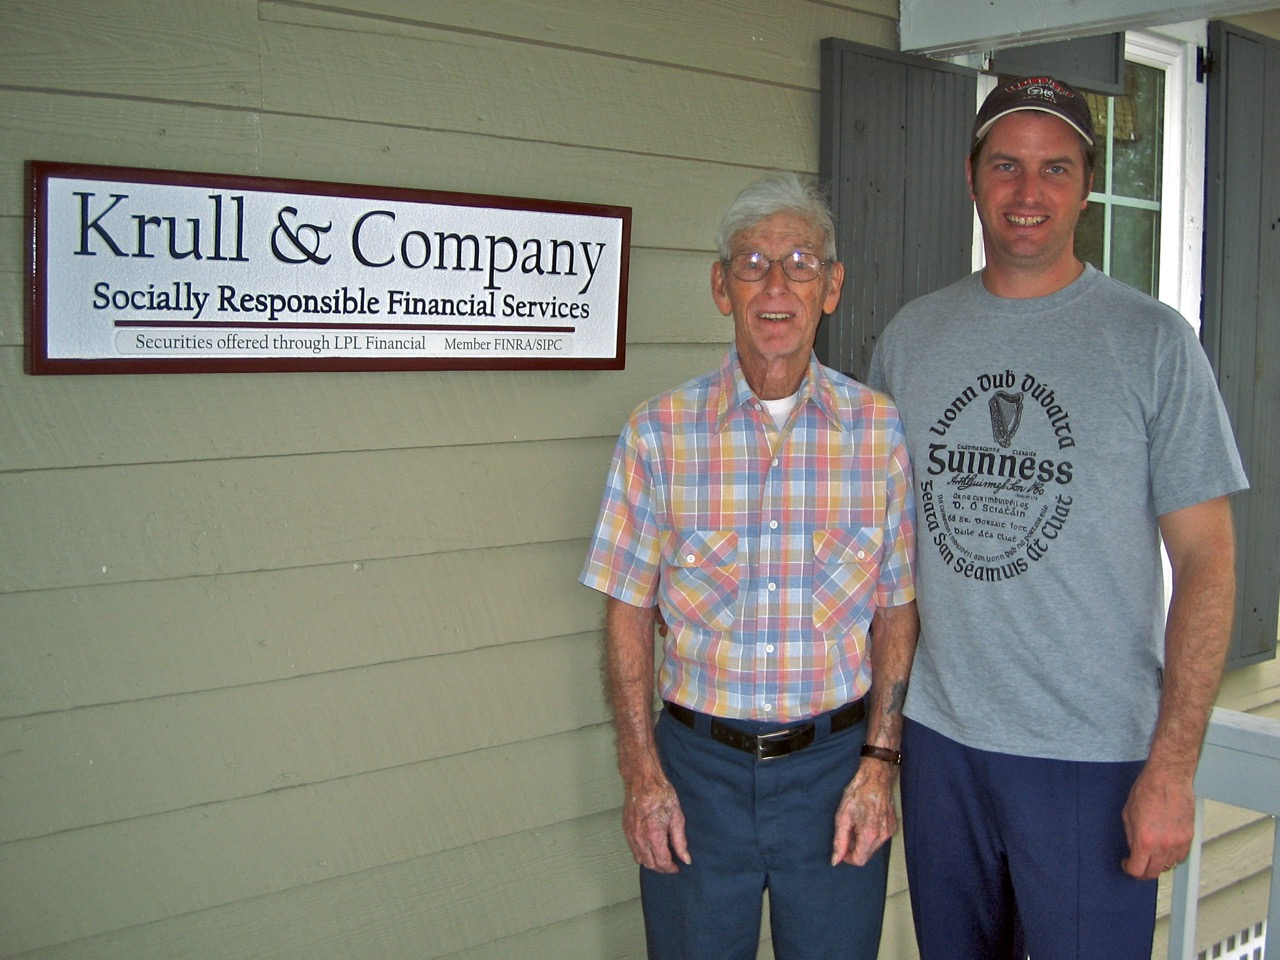 My dad and I at the Krull & Company office in Darien, GA in 2008